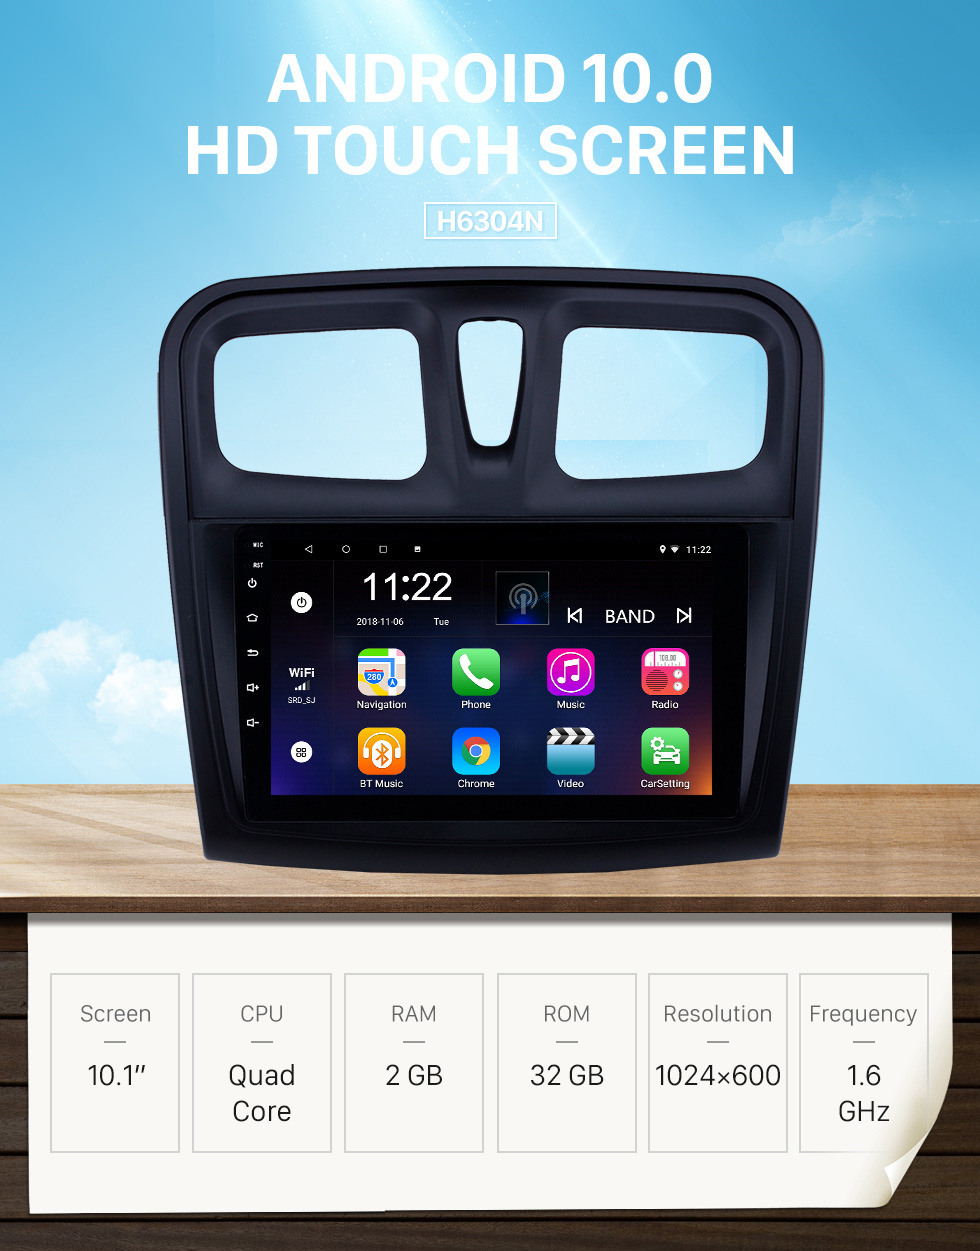 Seicane 10.1 inch Android 10.0 GPS Navigation Radio for 2012-2017 Renault Sandero with Bluetooth USB HD Touchscreen support Carplay DVR OBD